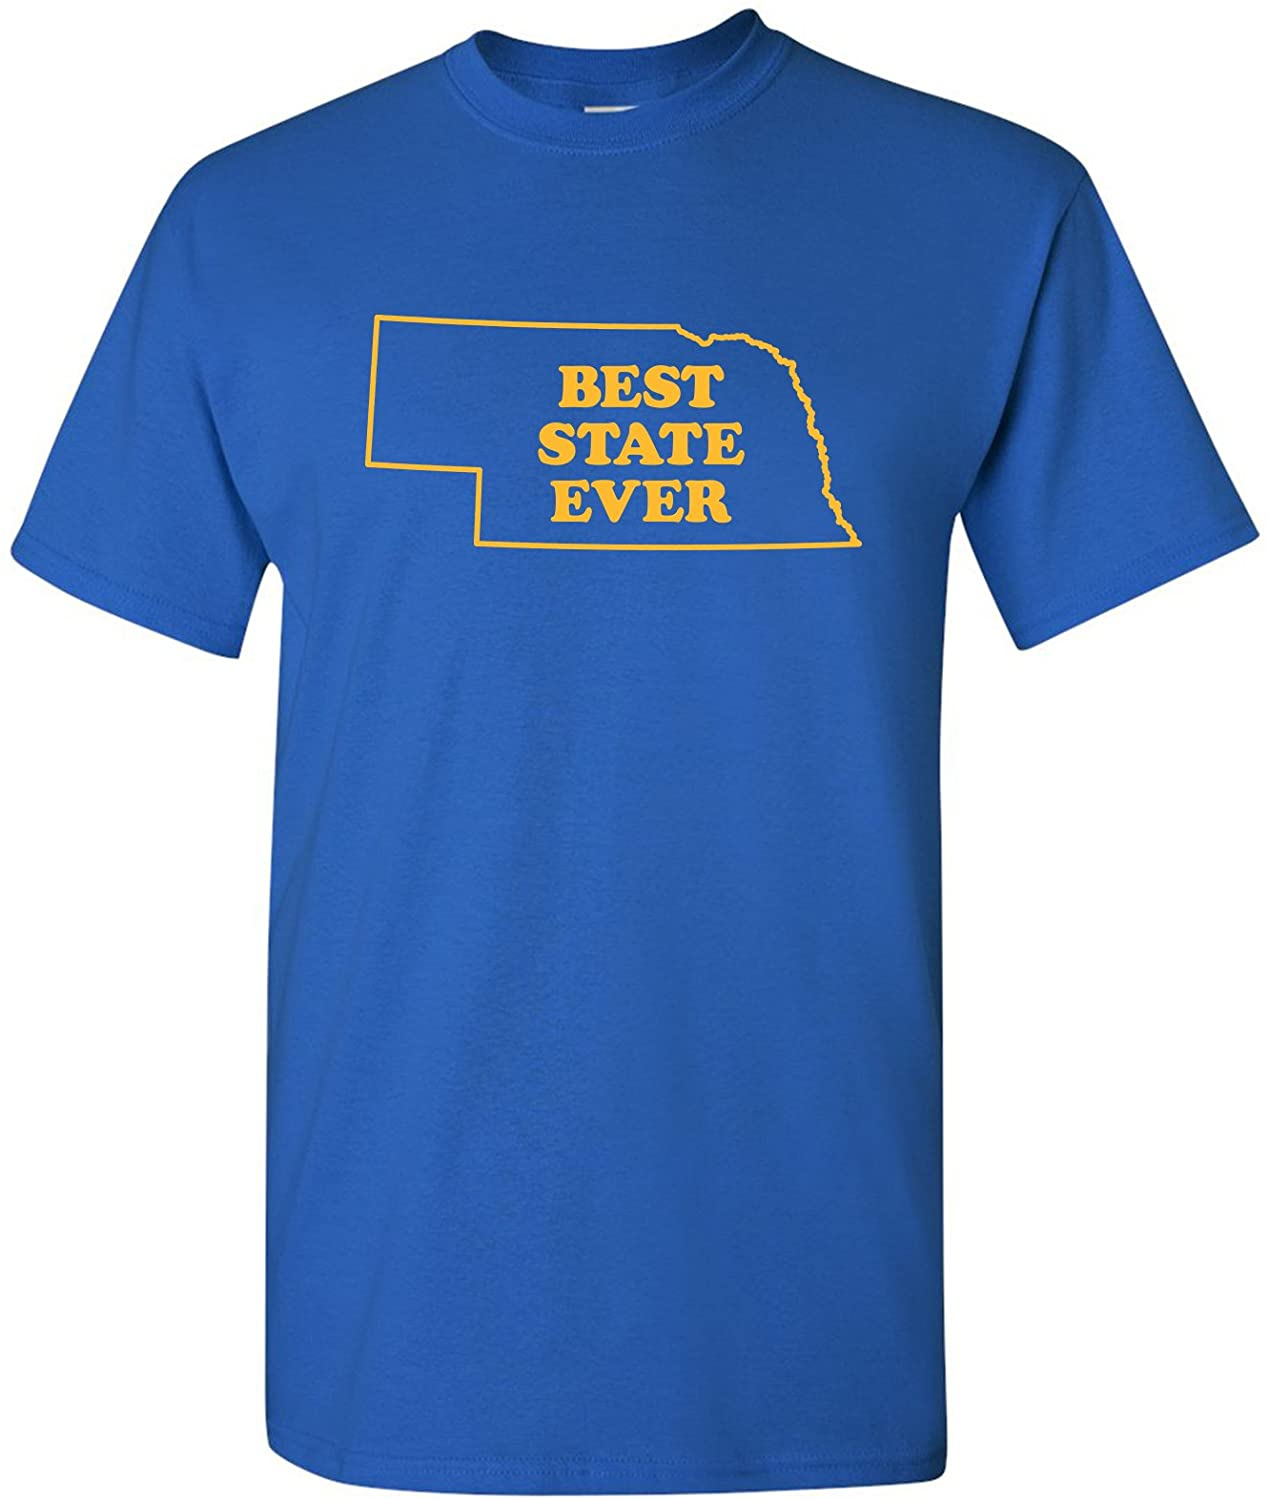 UGP Campus Apparel Best State Ever, Hometown Pride, State Pride, Basic Cotton T-Shirt